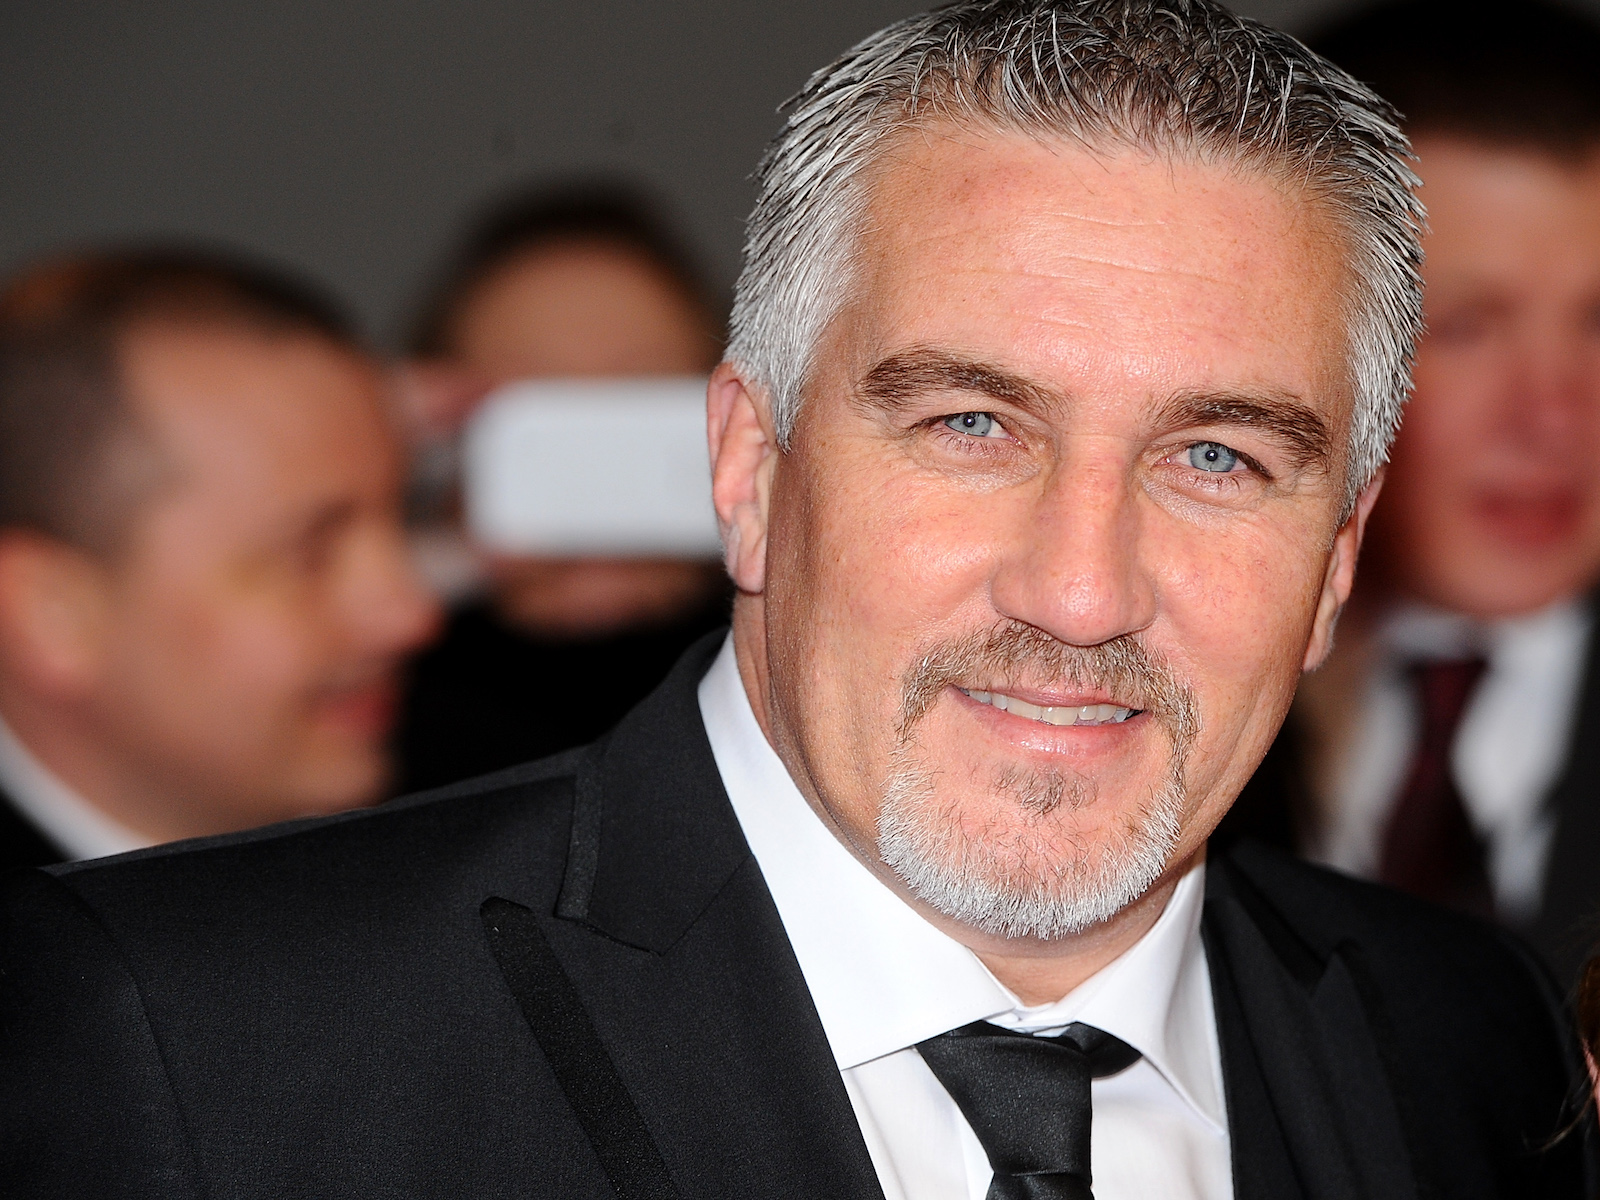 Paul Hollywood Misses Mary Berry on the 'Great British Bake Off'